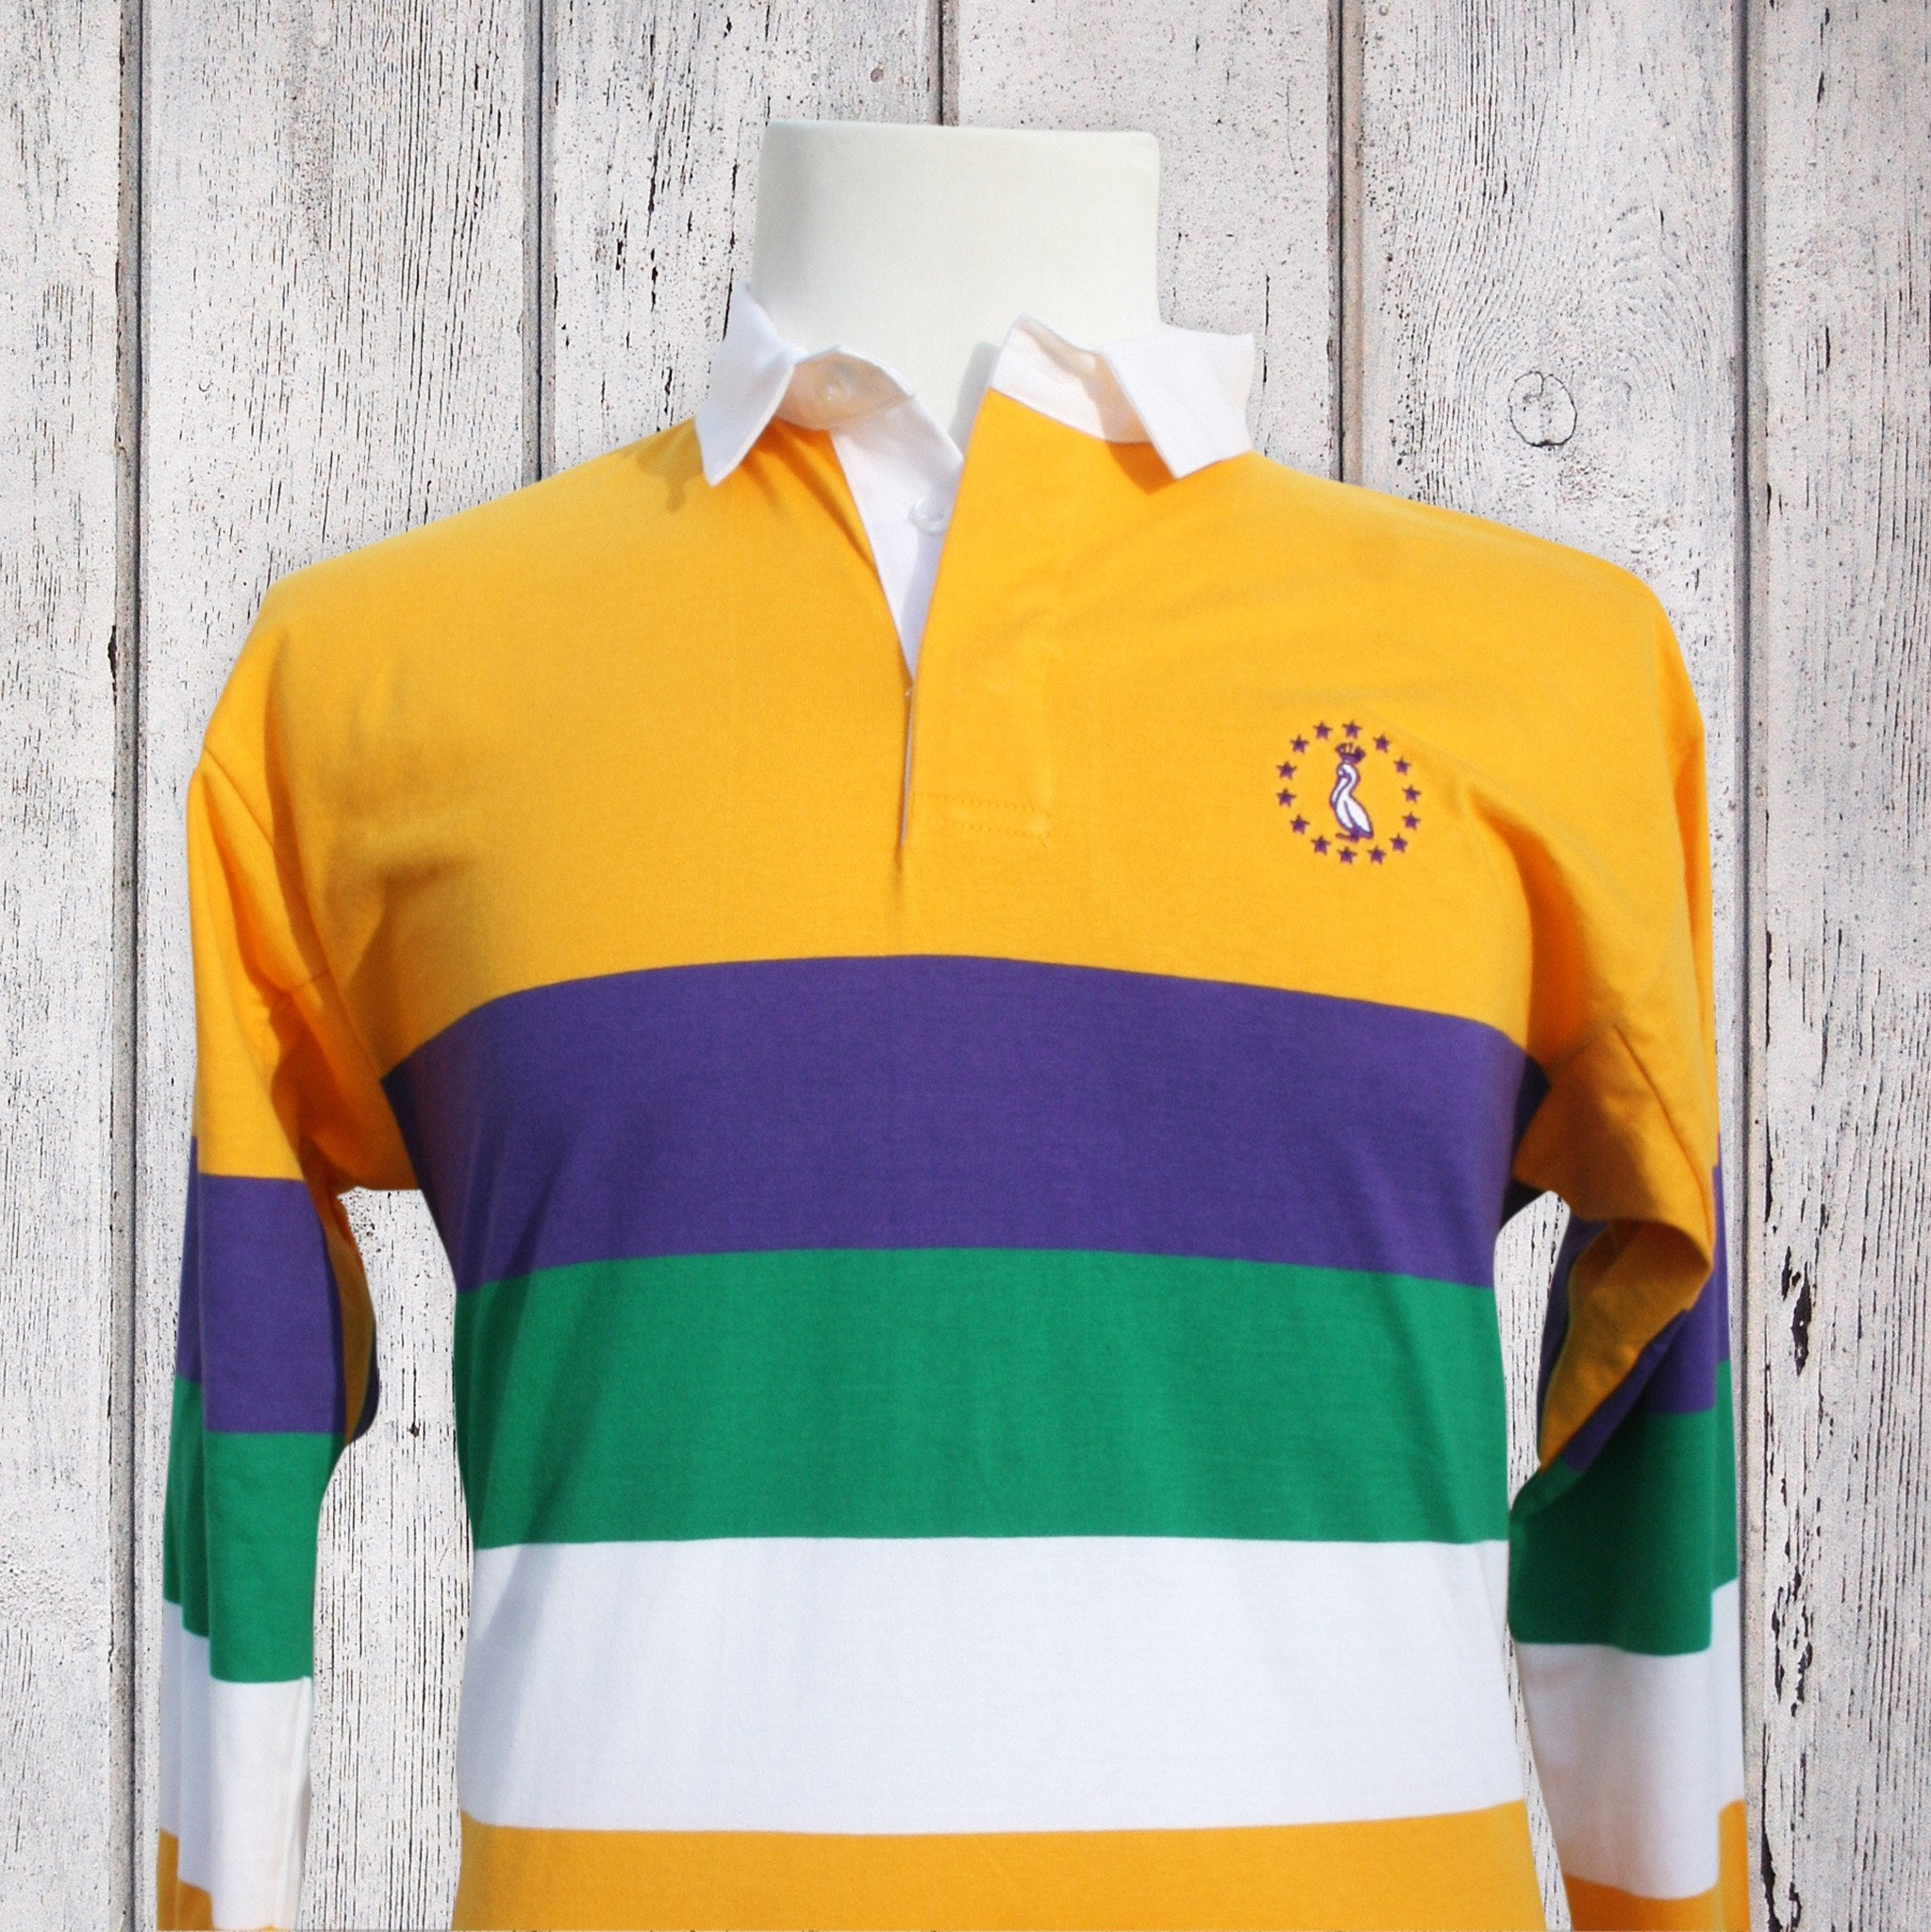 a3abf145e Mardi Gras Rugby Shirt - Gold With MG Stripes - Pelican Coast Clothing